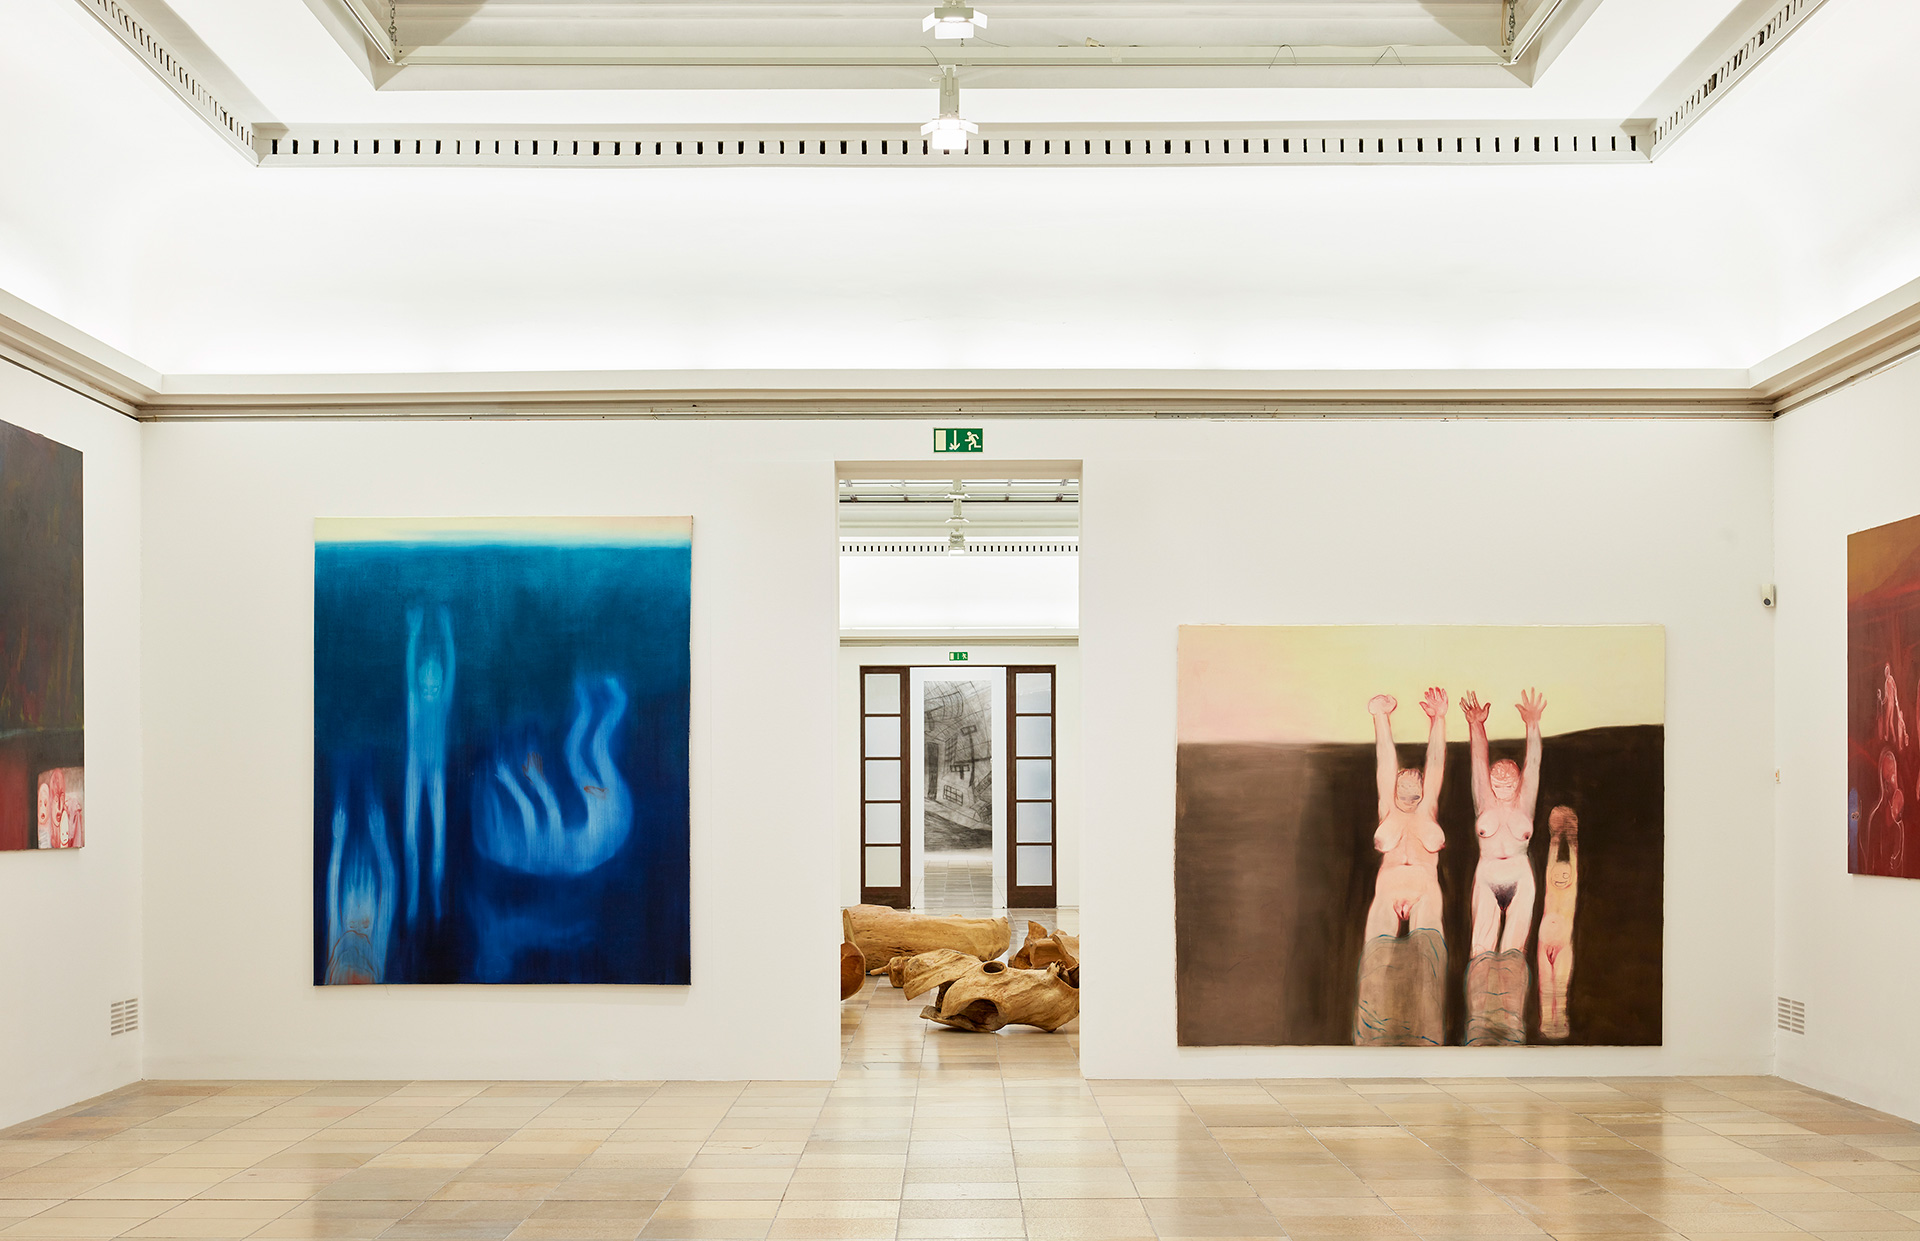 Miriam Cahn, BLUE and hands-high, 2019, exhibition view / installation view Haus der Kunst | I AS HUMAN | Miriam Cahn | STIRworld